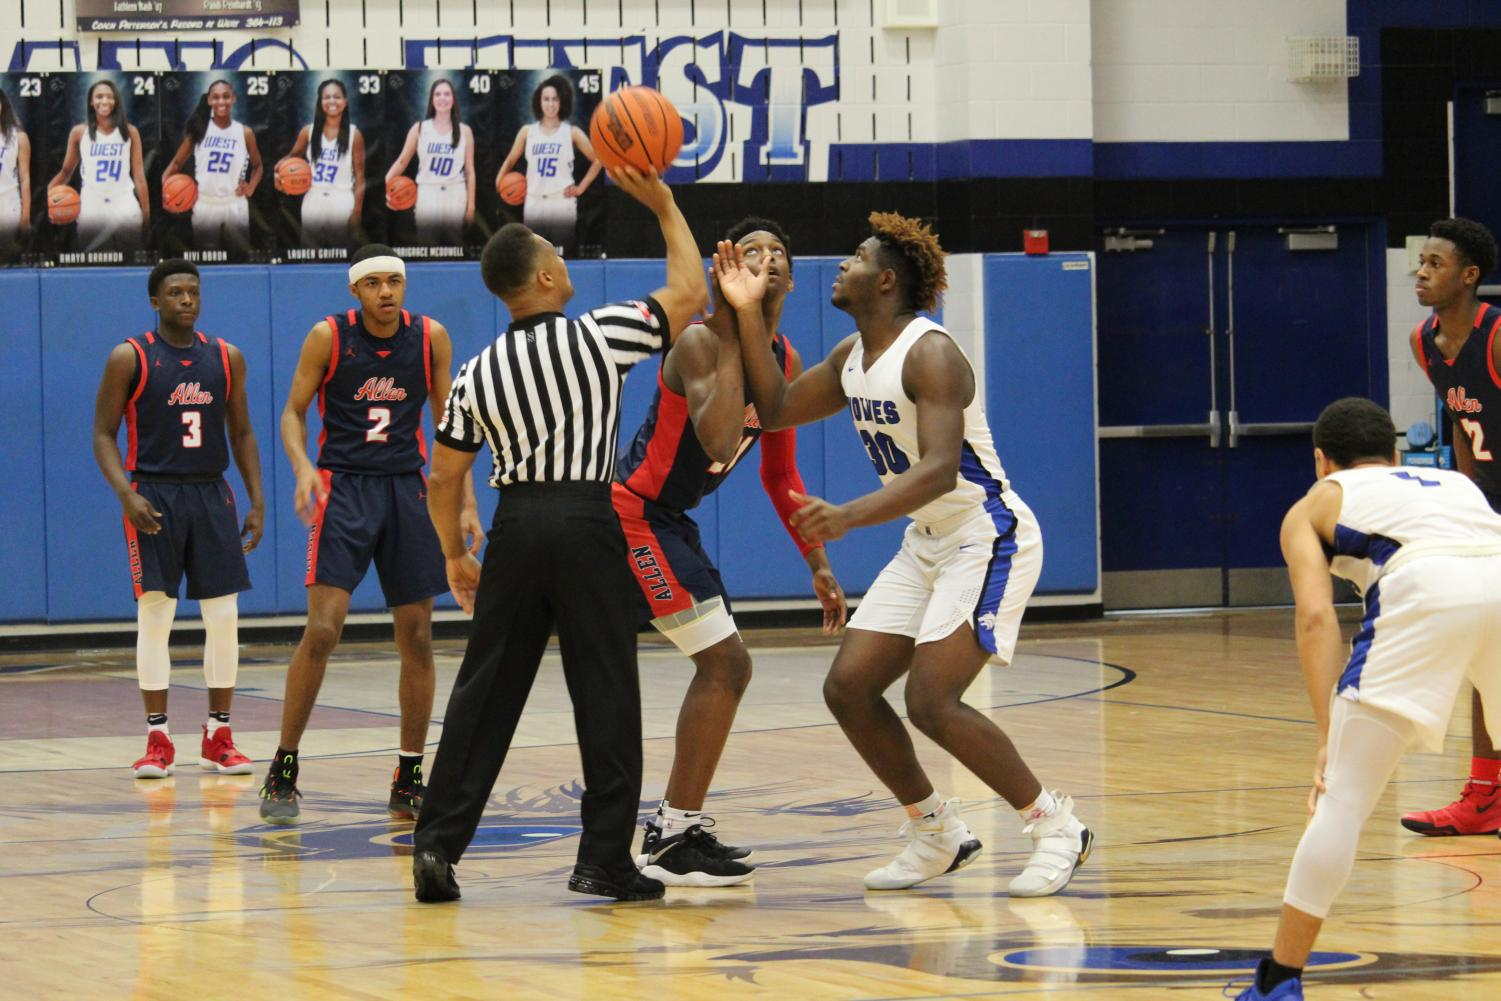 Plano West's Shemar Pearl (#30) looks to get to ball off the tip off at the beginning of the game.